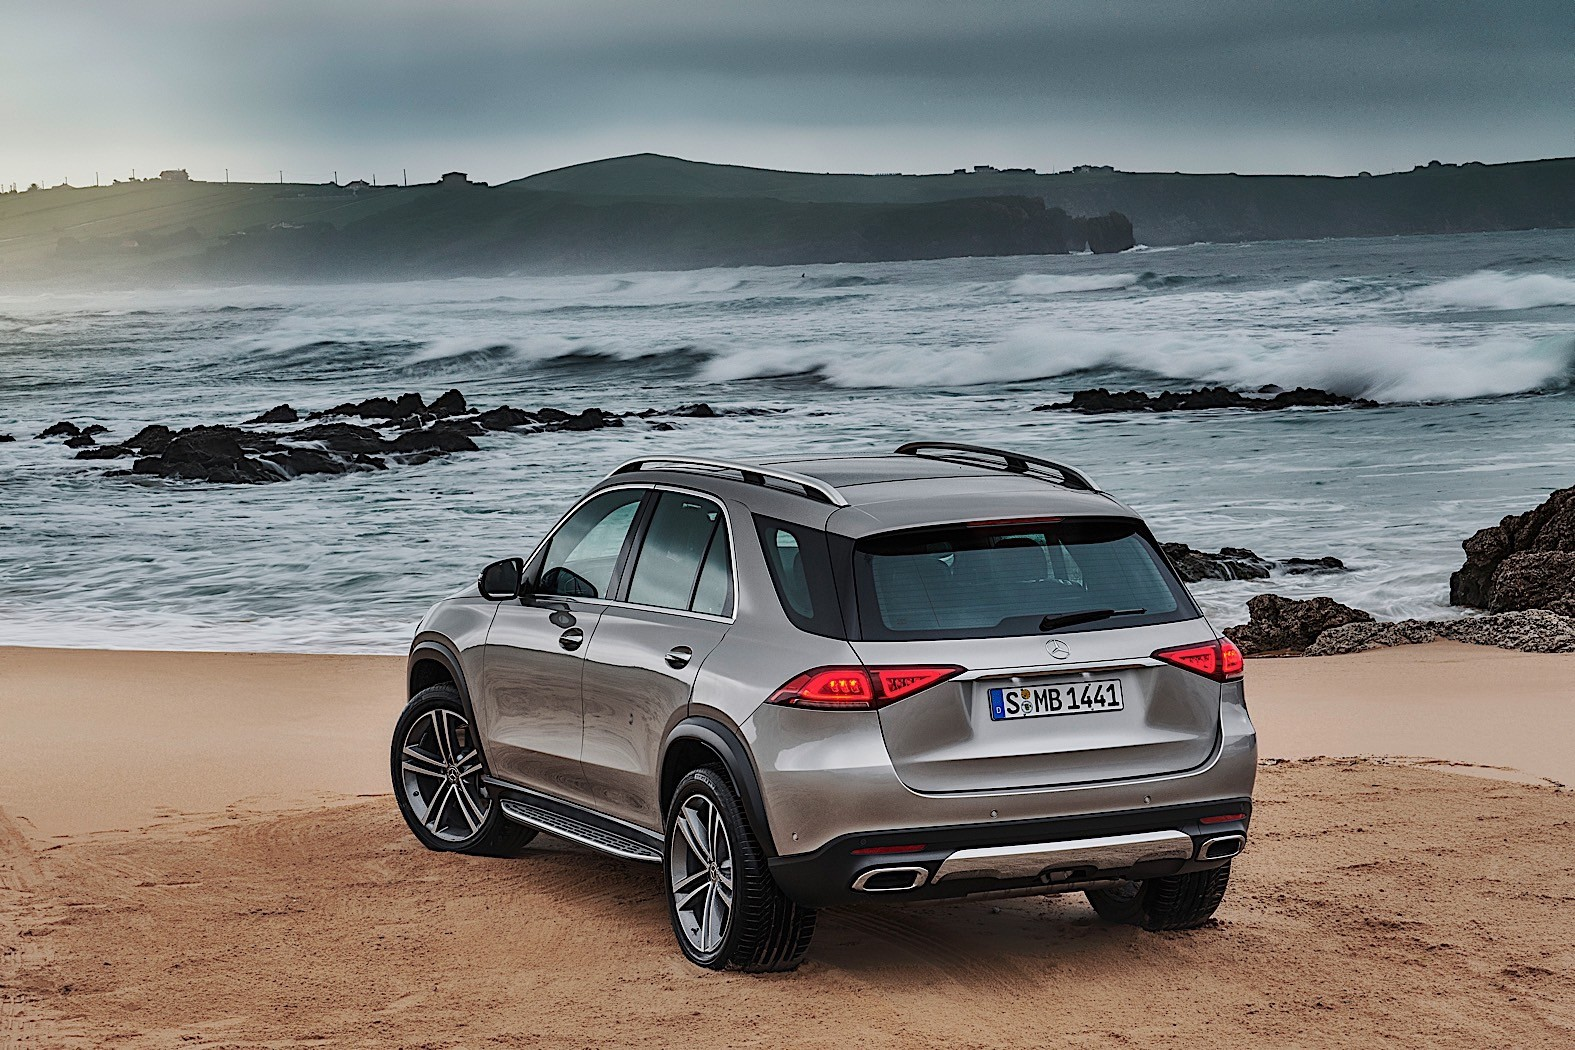 Mercedes Gle 2019 >> 2019 Mercedes-Benz GLE Breaks Cover, Packed with Technology - autoevolution